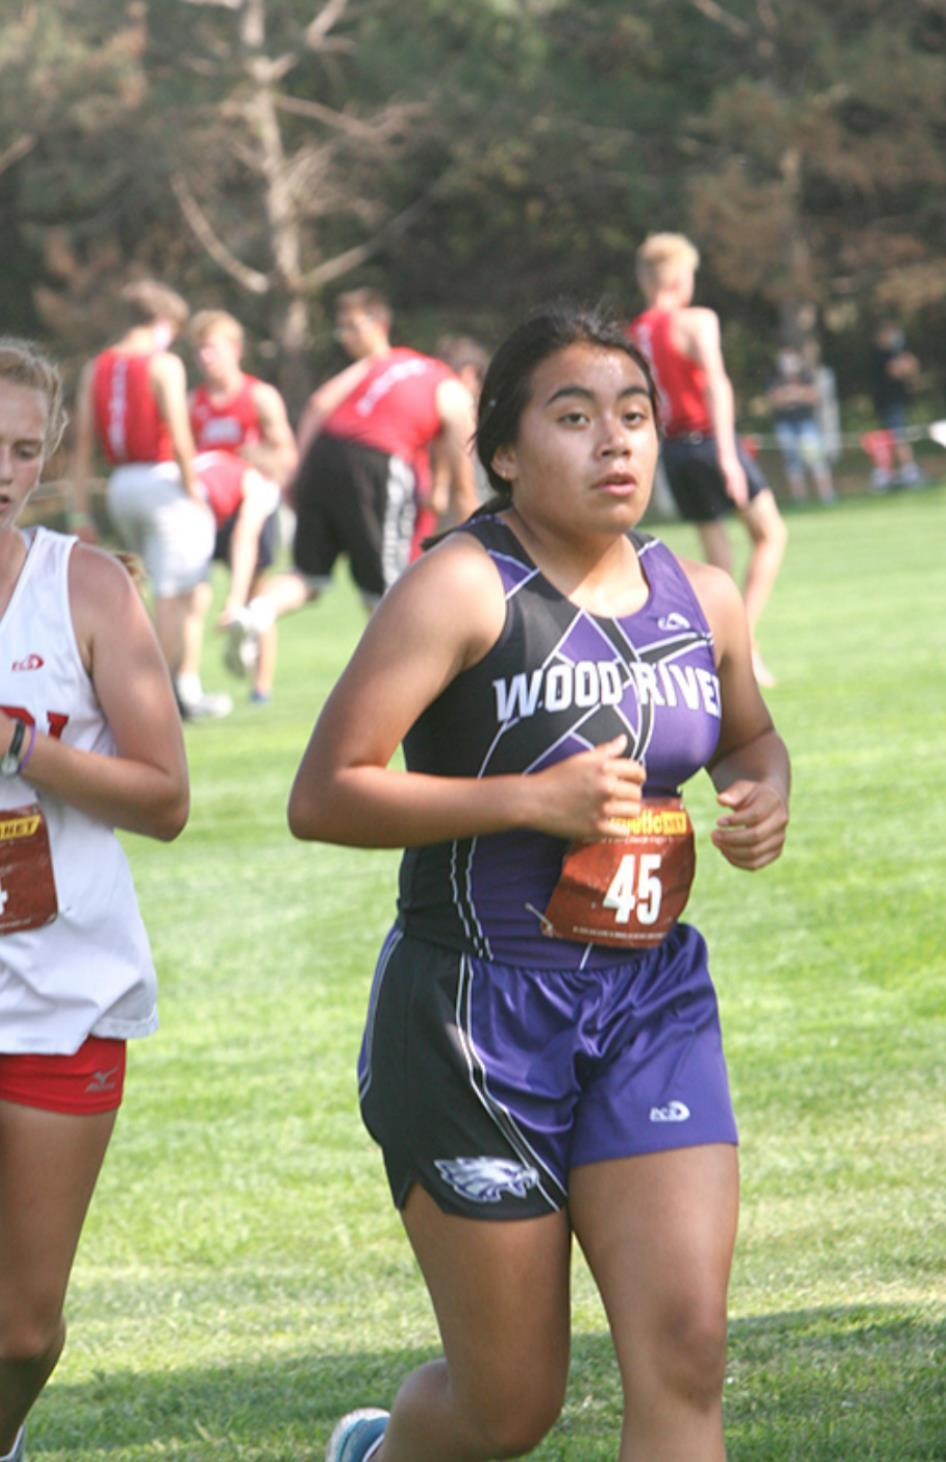 """Hensly Alvarado ran very close to an eight-minute mile,"" was Coach Gretchen Wiseman's praise for Wood River's sophomore runner. She placed 24th in the field of 37 runners at the Grand Island Northwest cross country meet last week. (—photo by Ly"